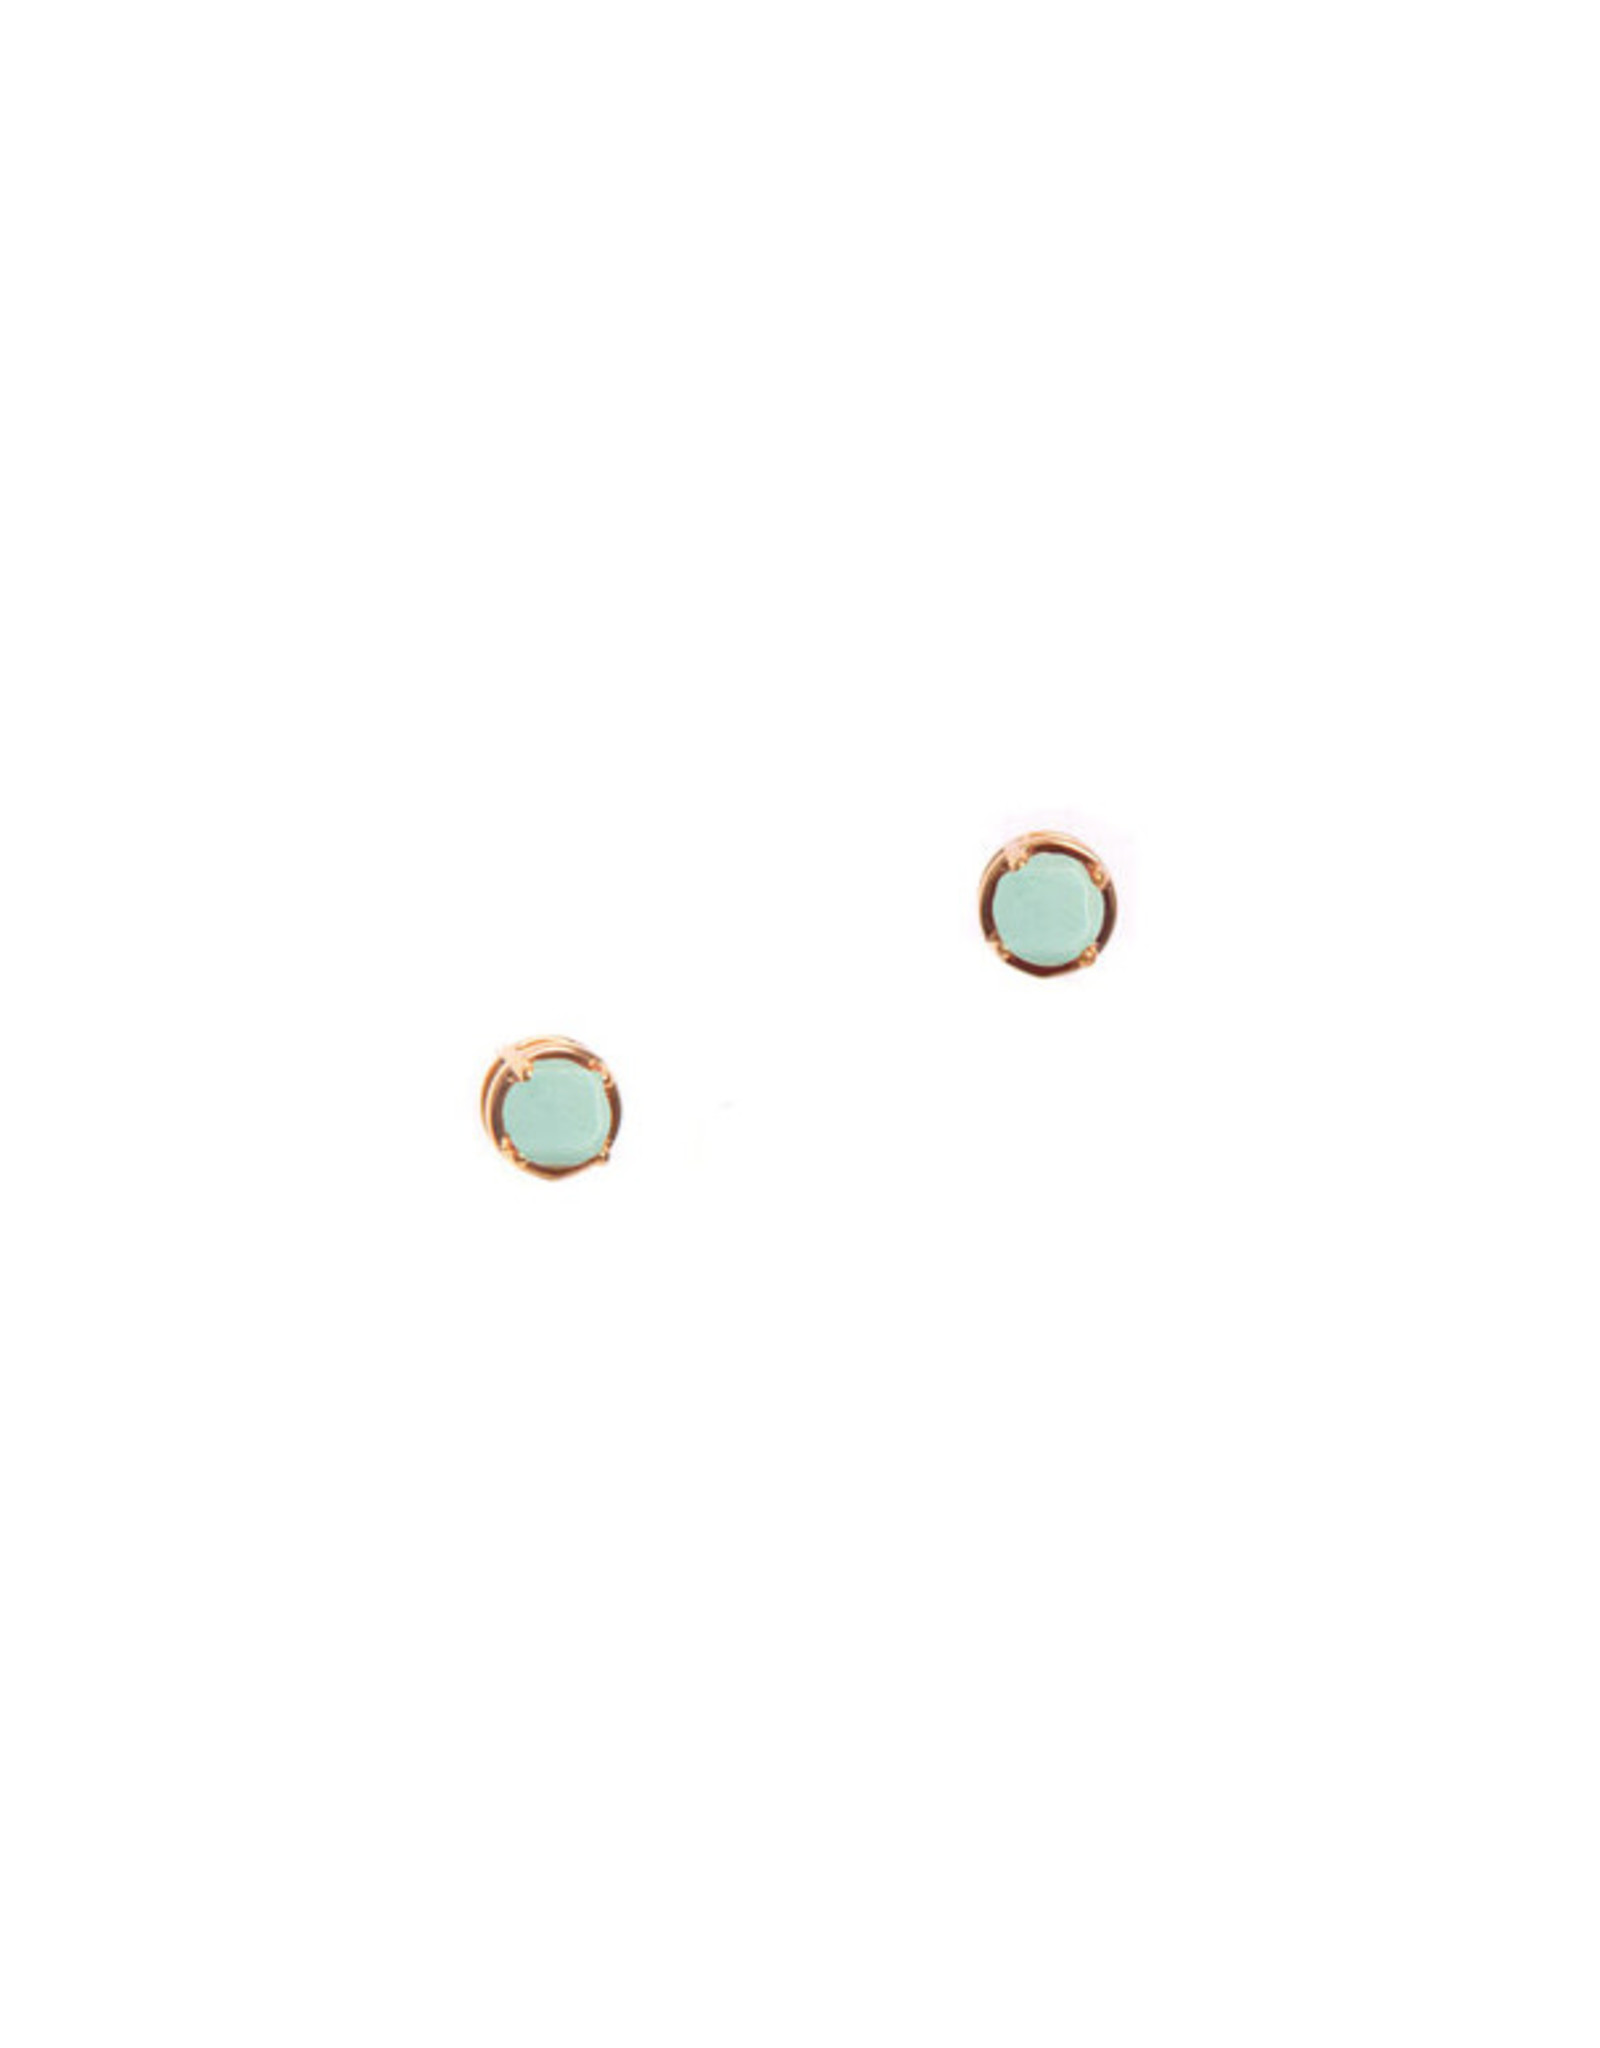 Hailey Gerrits Designs Stone Studs - Green Turquoise